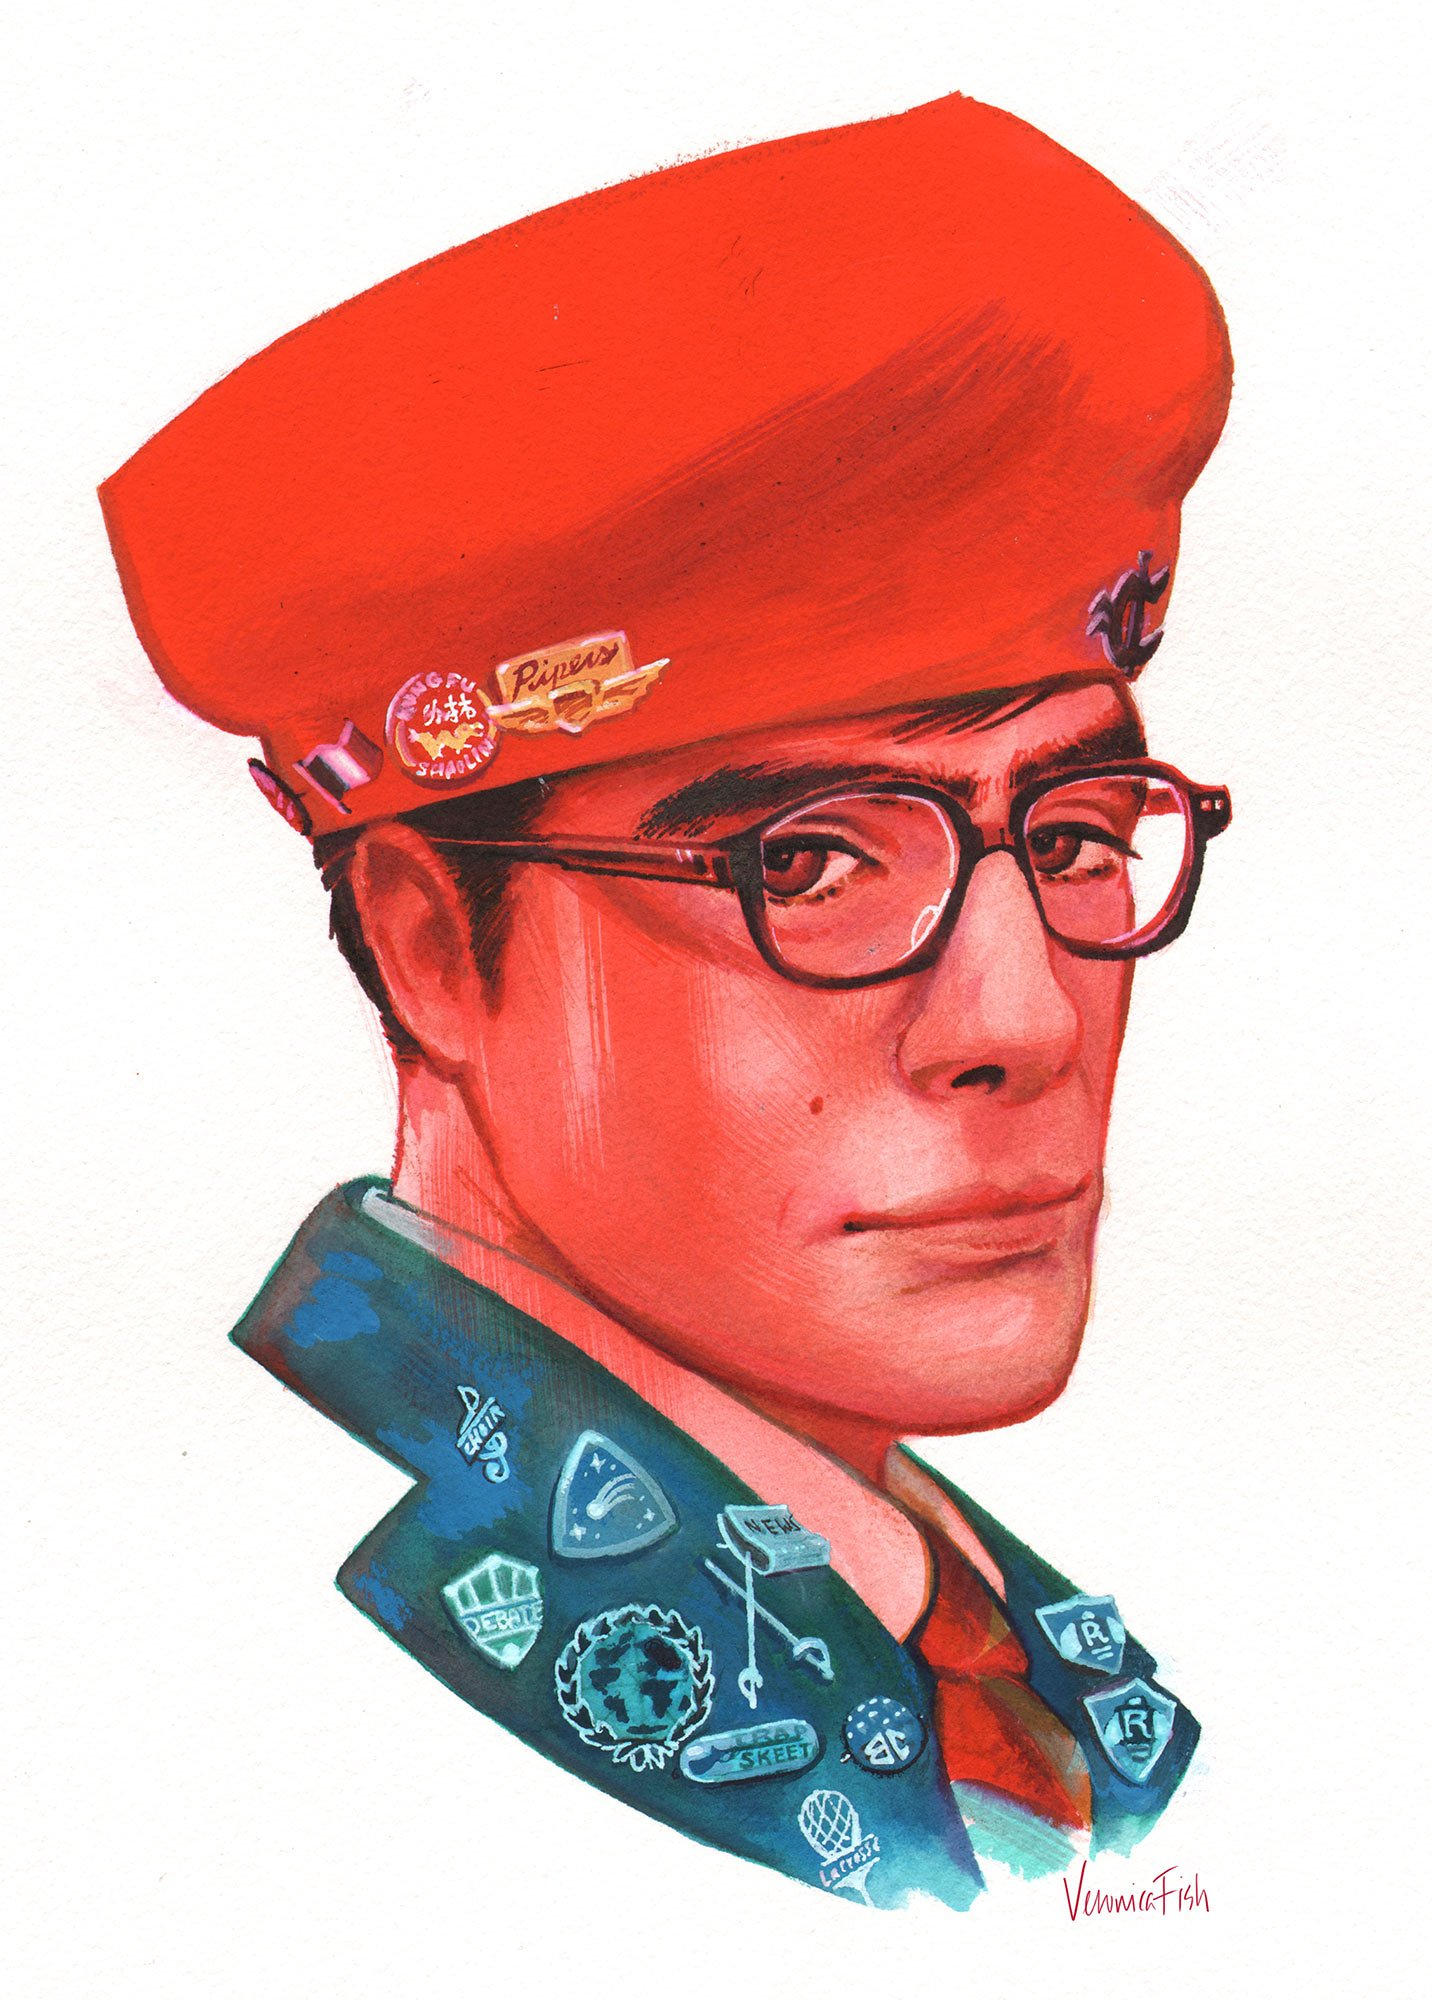 wes anderson fan art illustration oldskull 5